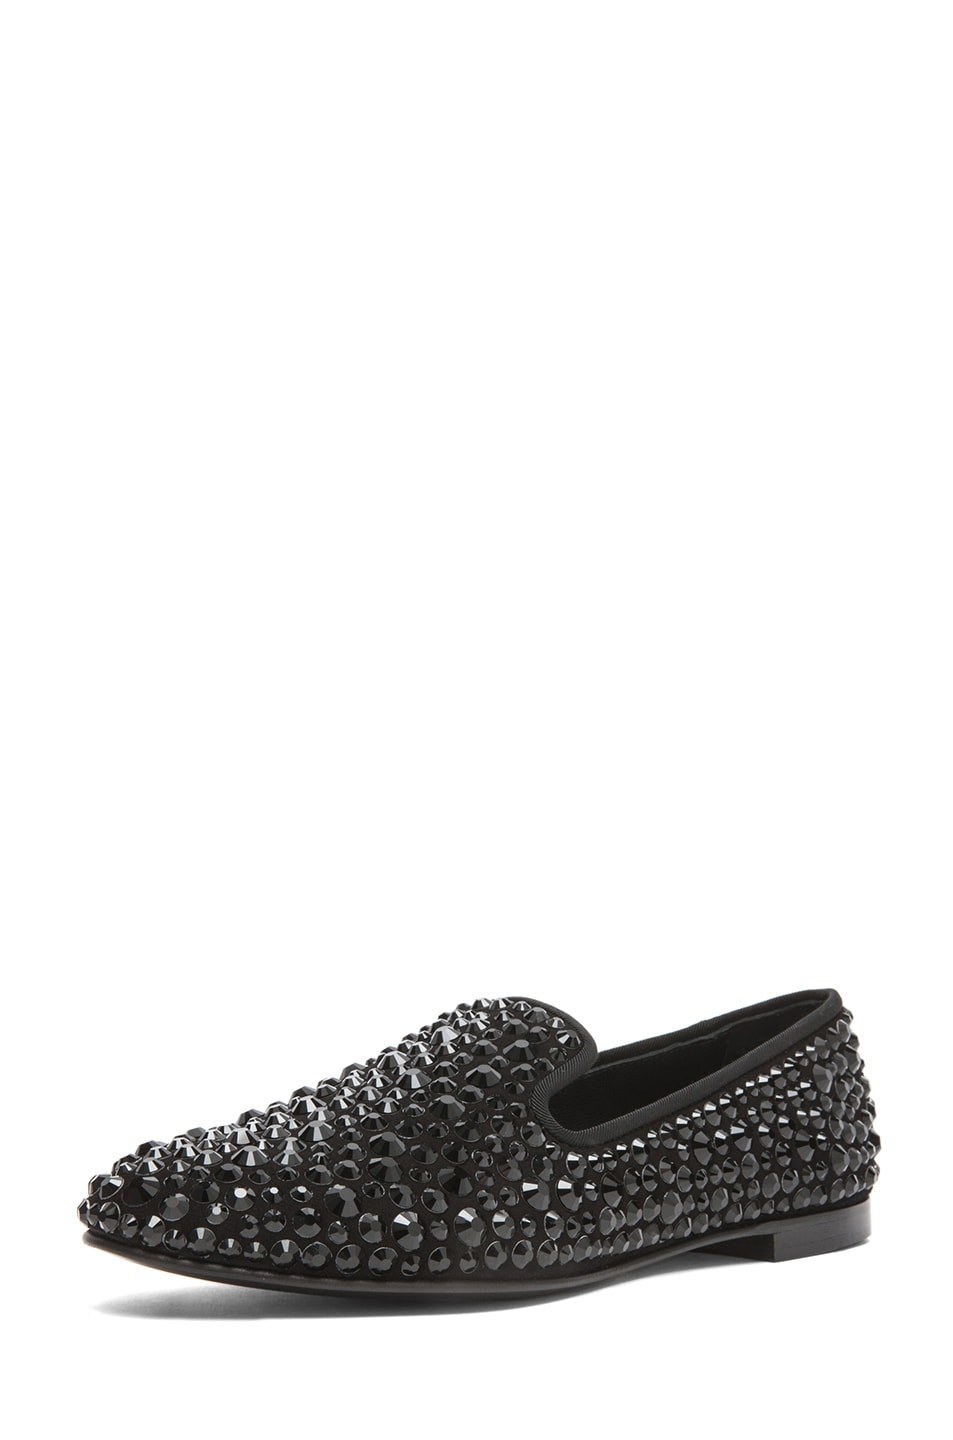 Image 2 of Giuseppe Zanotti Suede Embellished Flats in Black